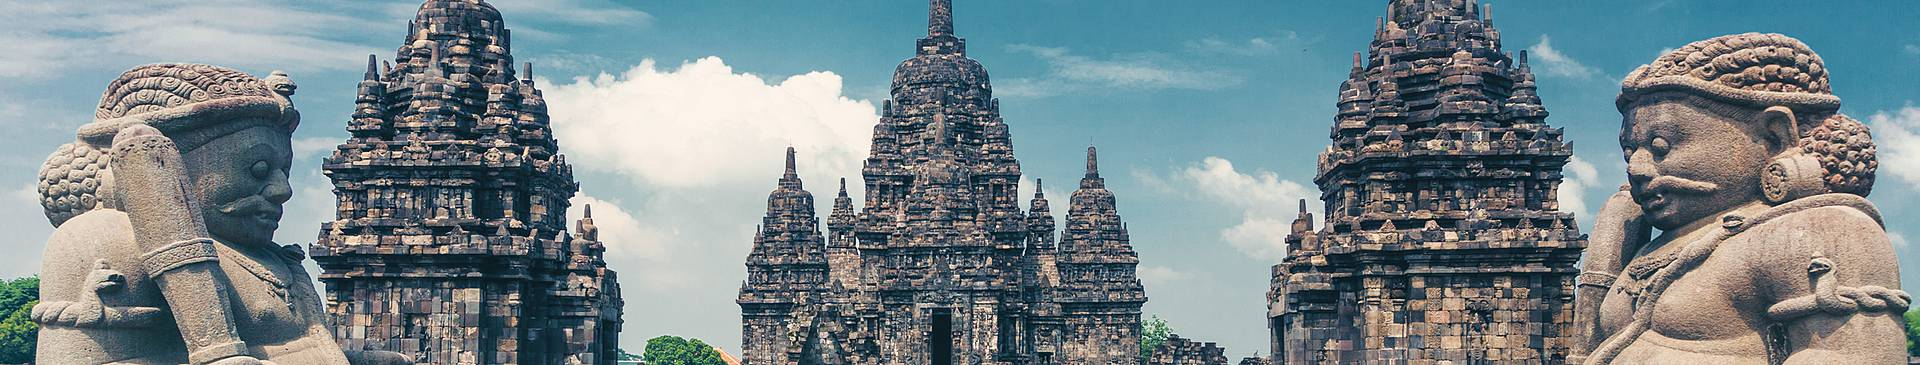 Historical sites in Indonesia